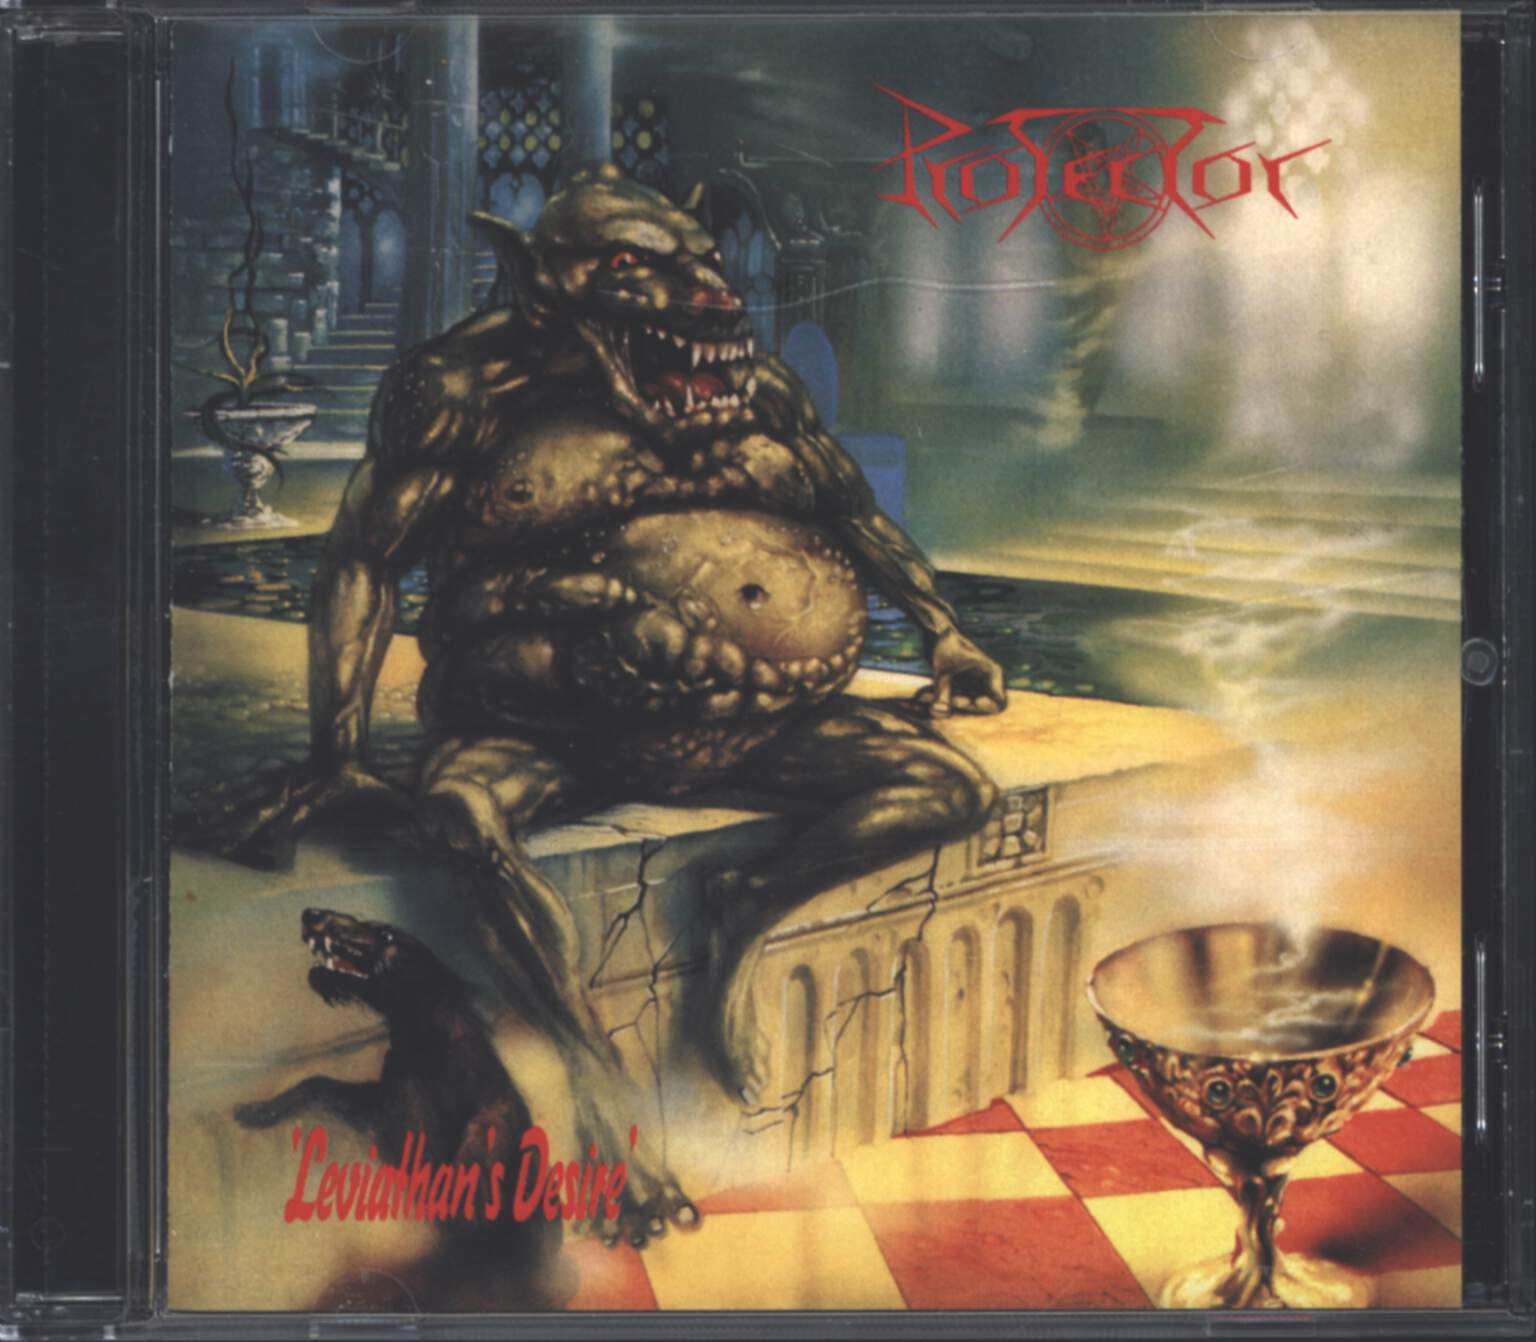 Protector: Leviathan's Desire, CD